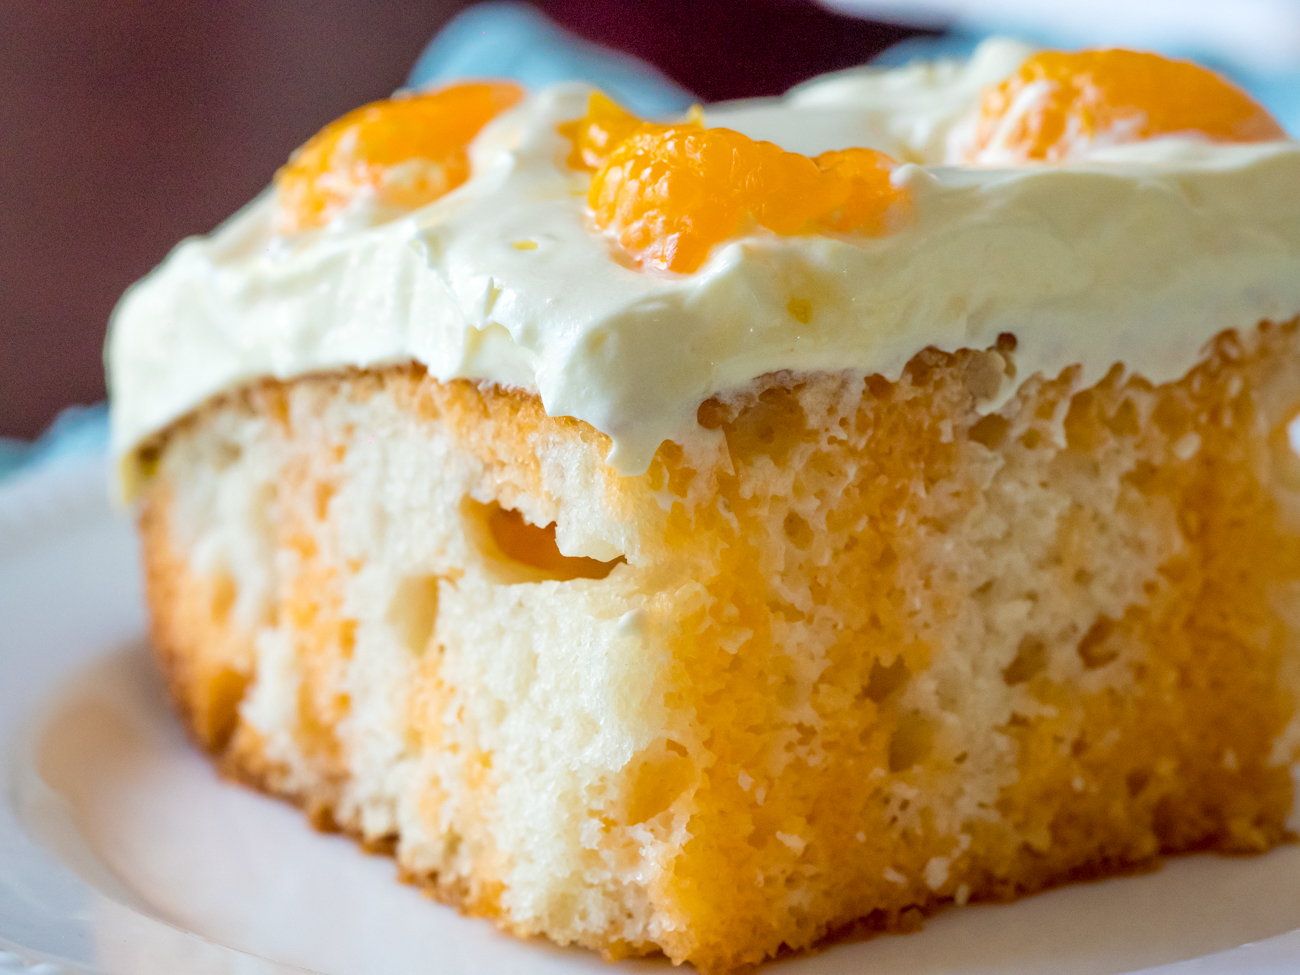 Orange Creamsicle Cake With Pudding